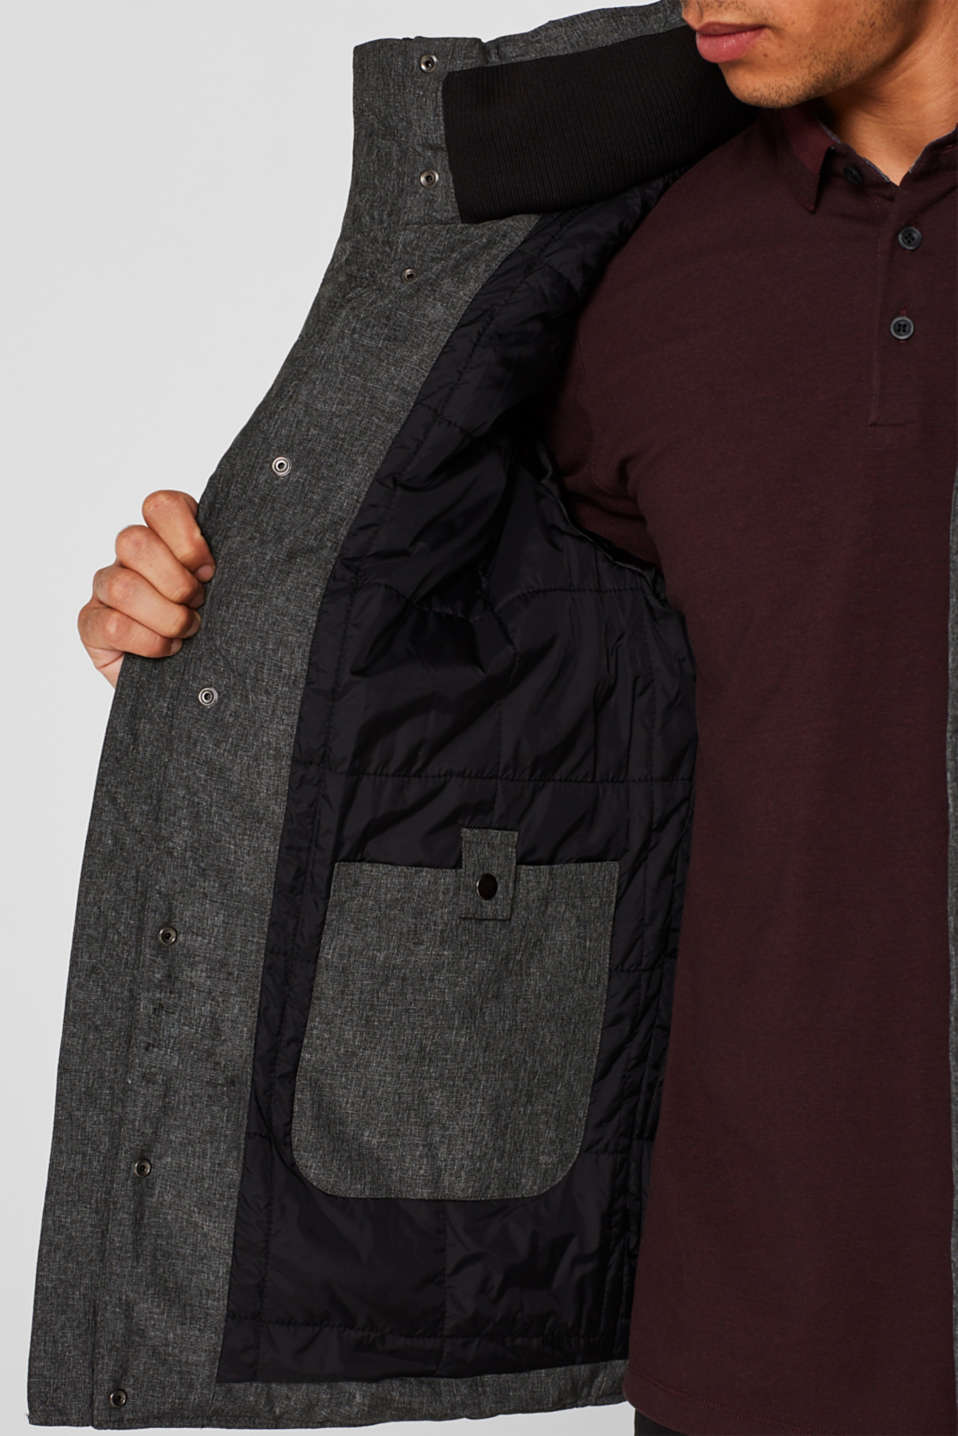 Winter jacket with an adjustable hood, GREY, detail image number 6